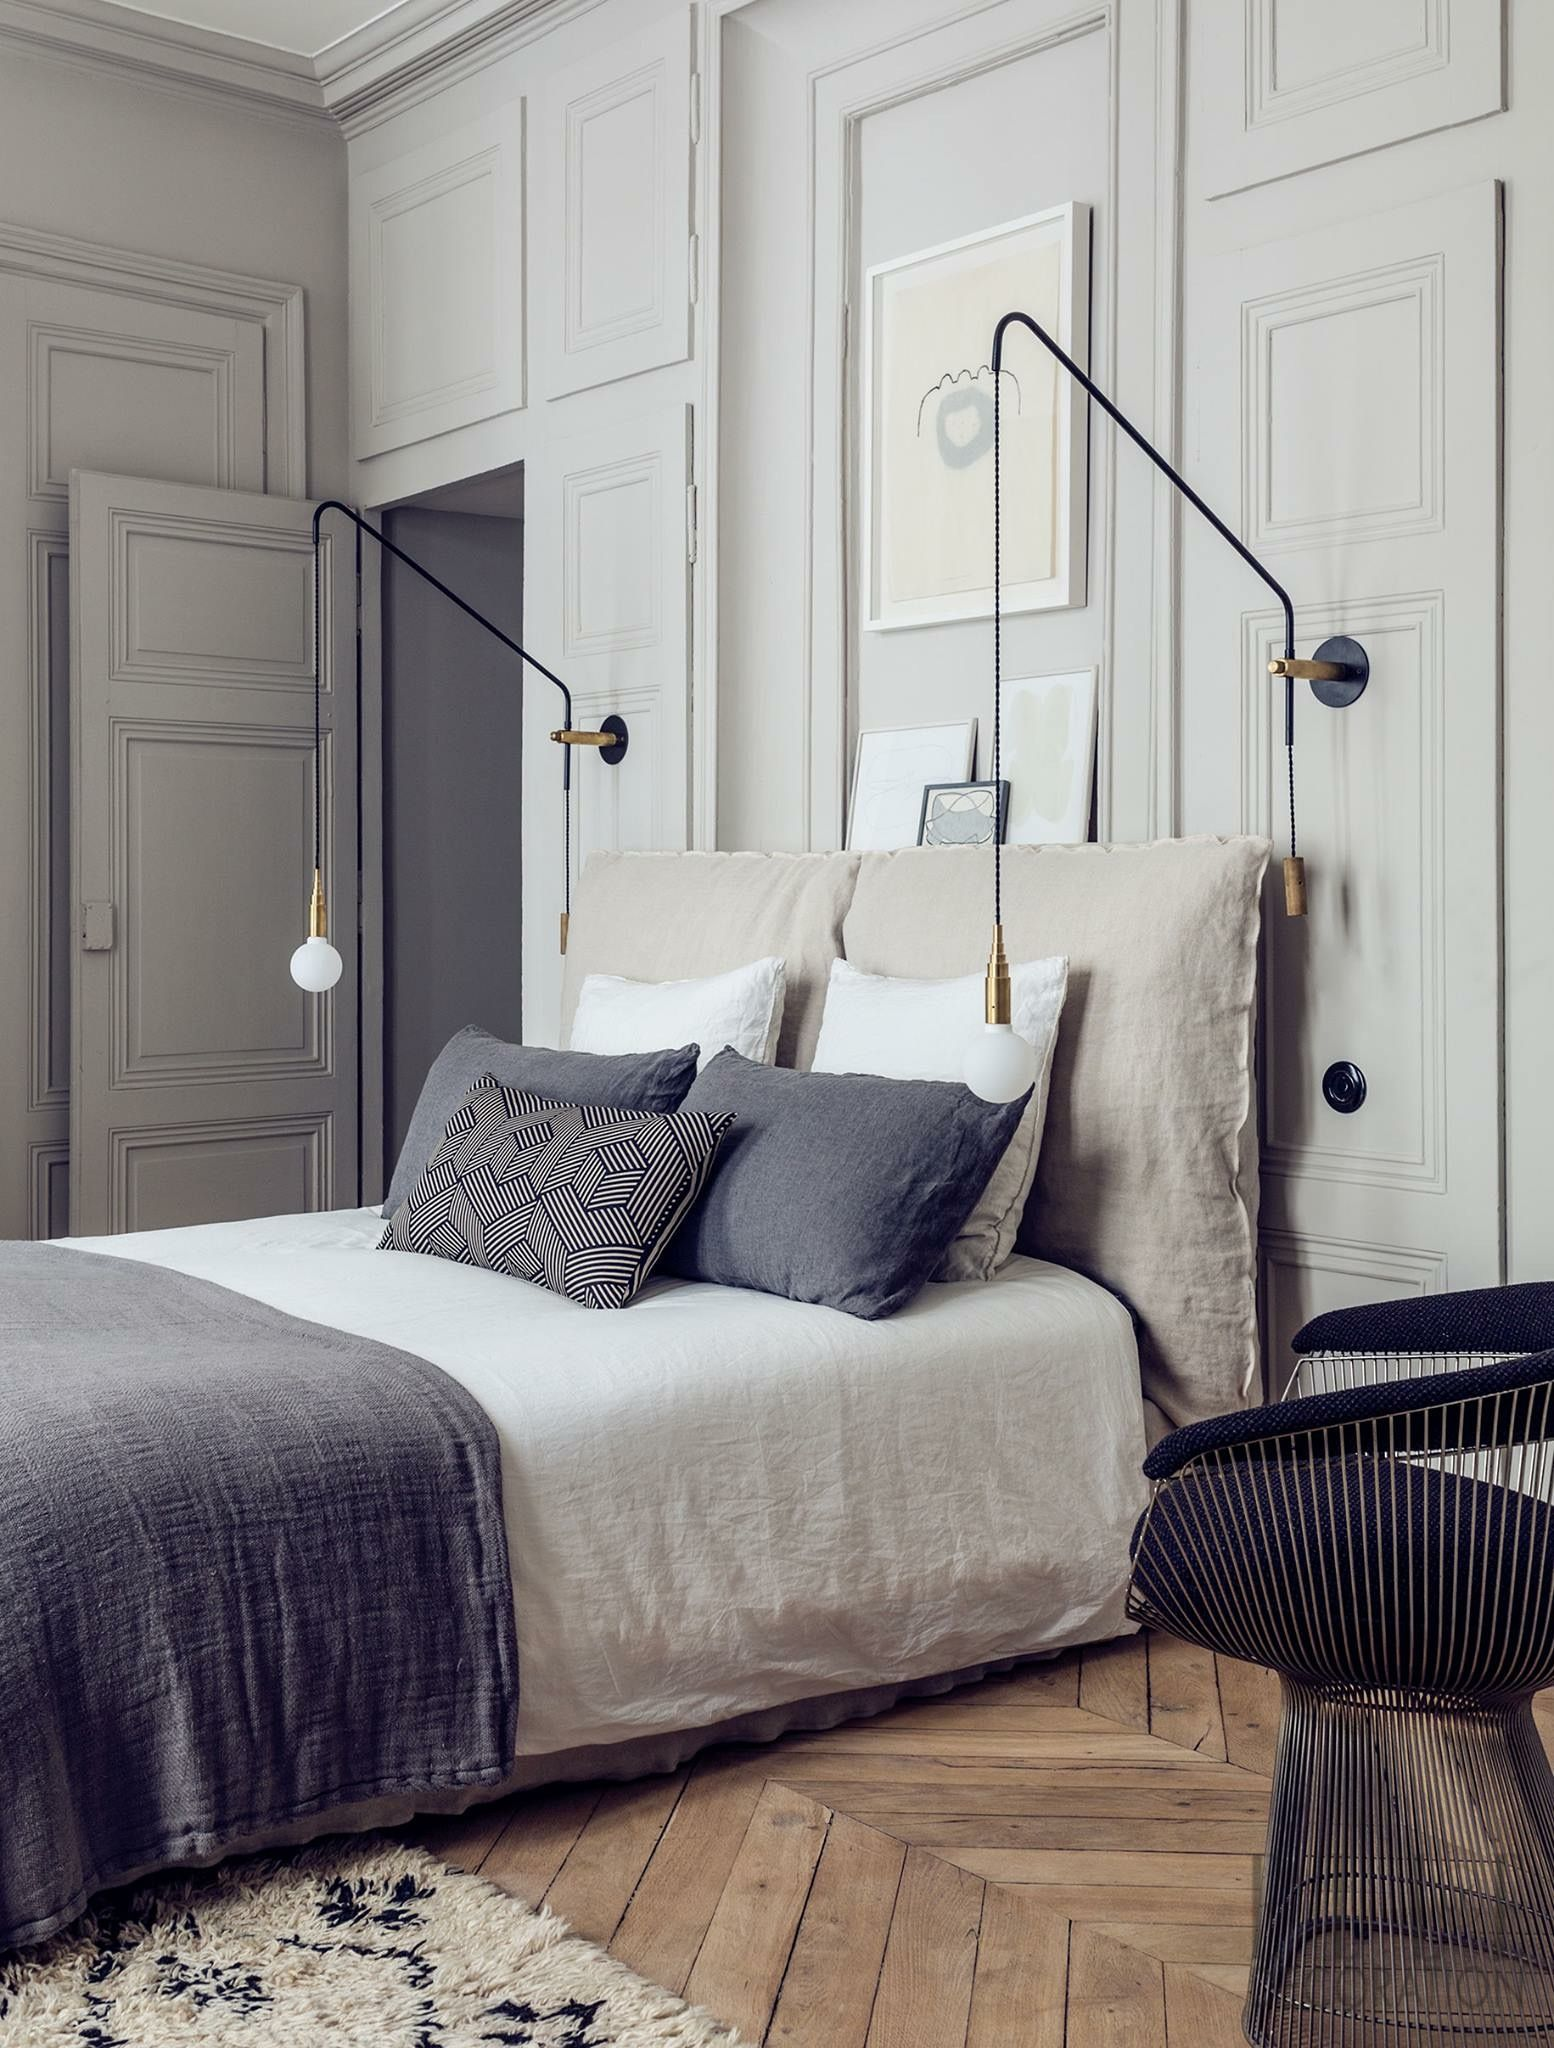 Neutral linens, weathered wood floor panelled walls